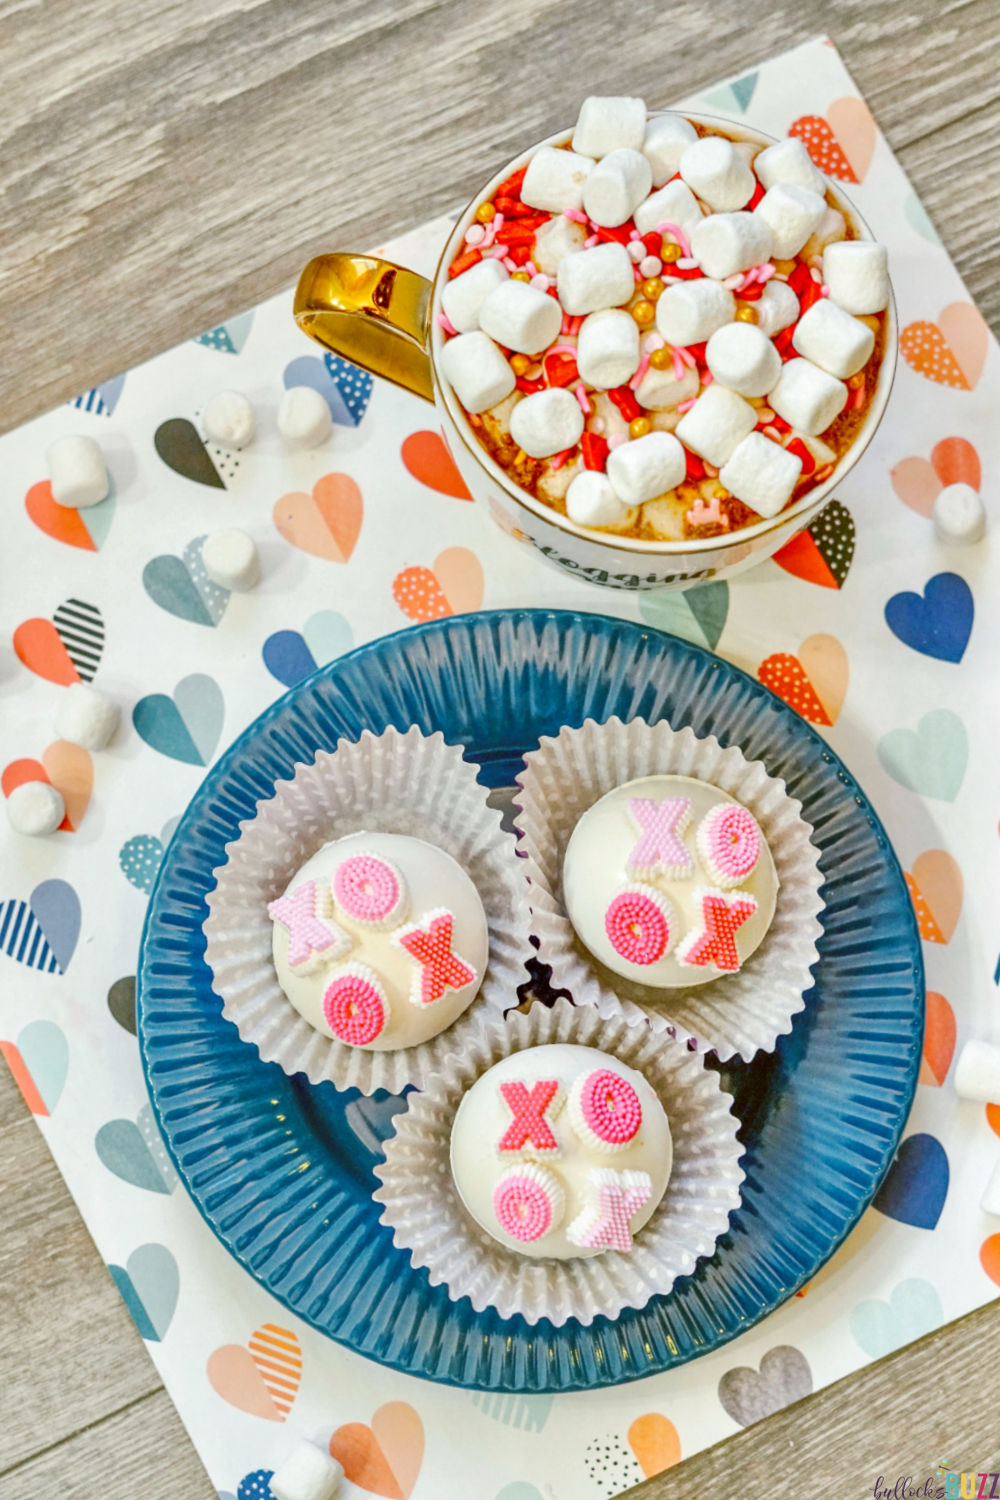 These super cute homemade hot cocoa bombs are fun to make and to drink. Plus they make a great Valentine's or Galentine's gift!